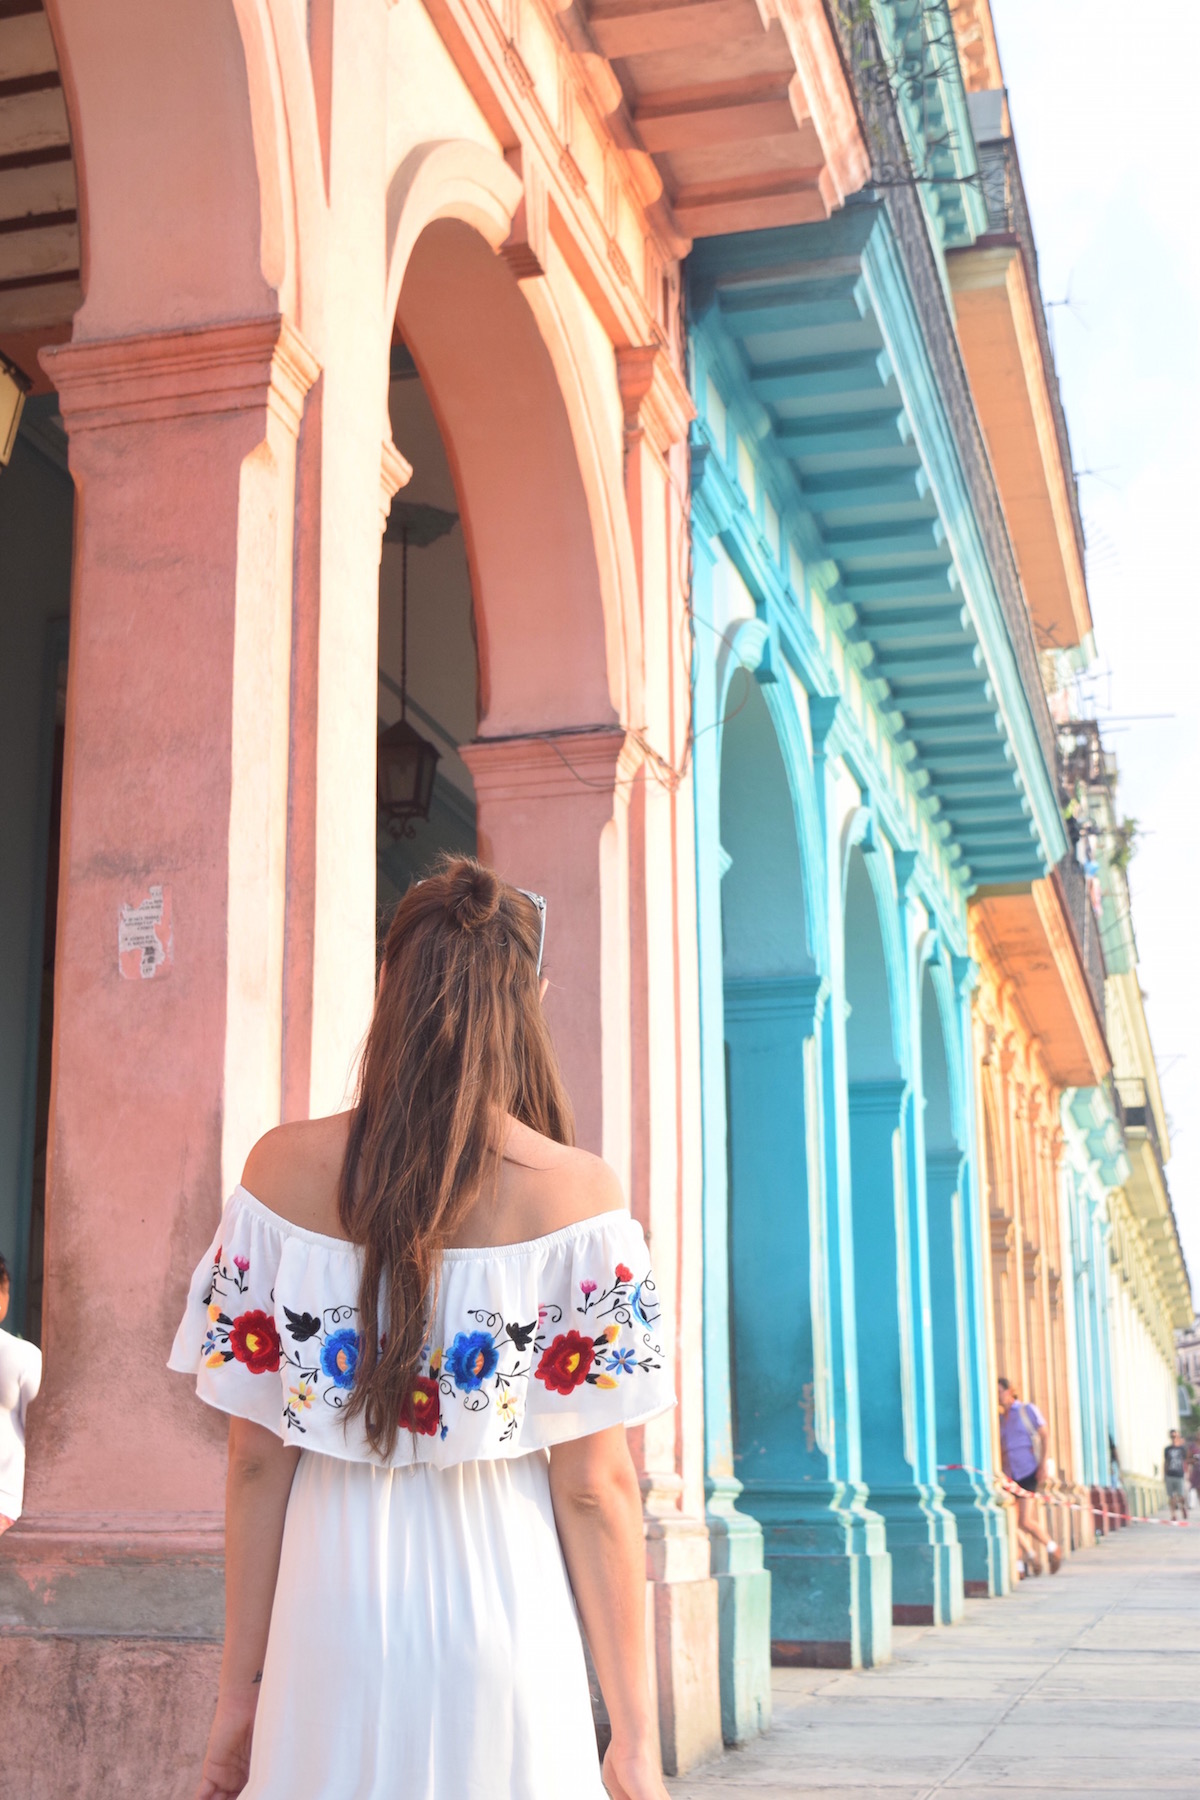 things to do in Old havana